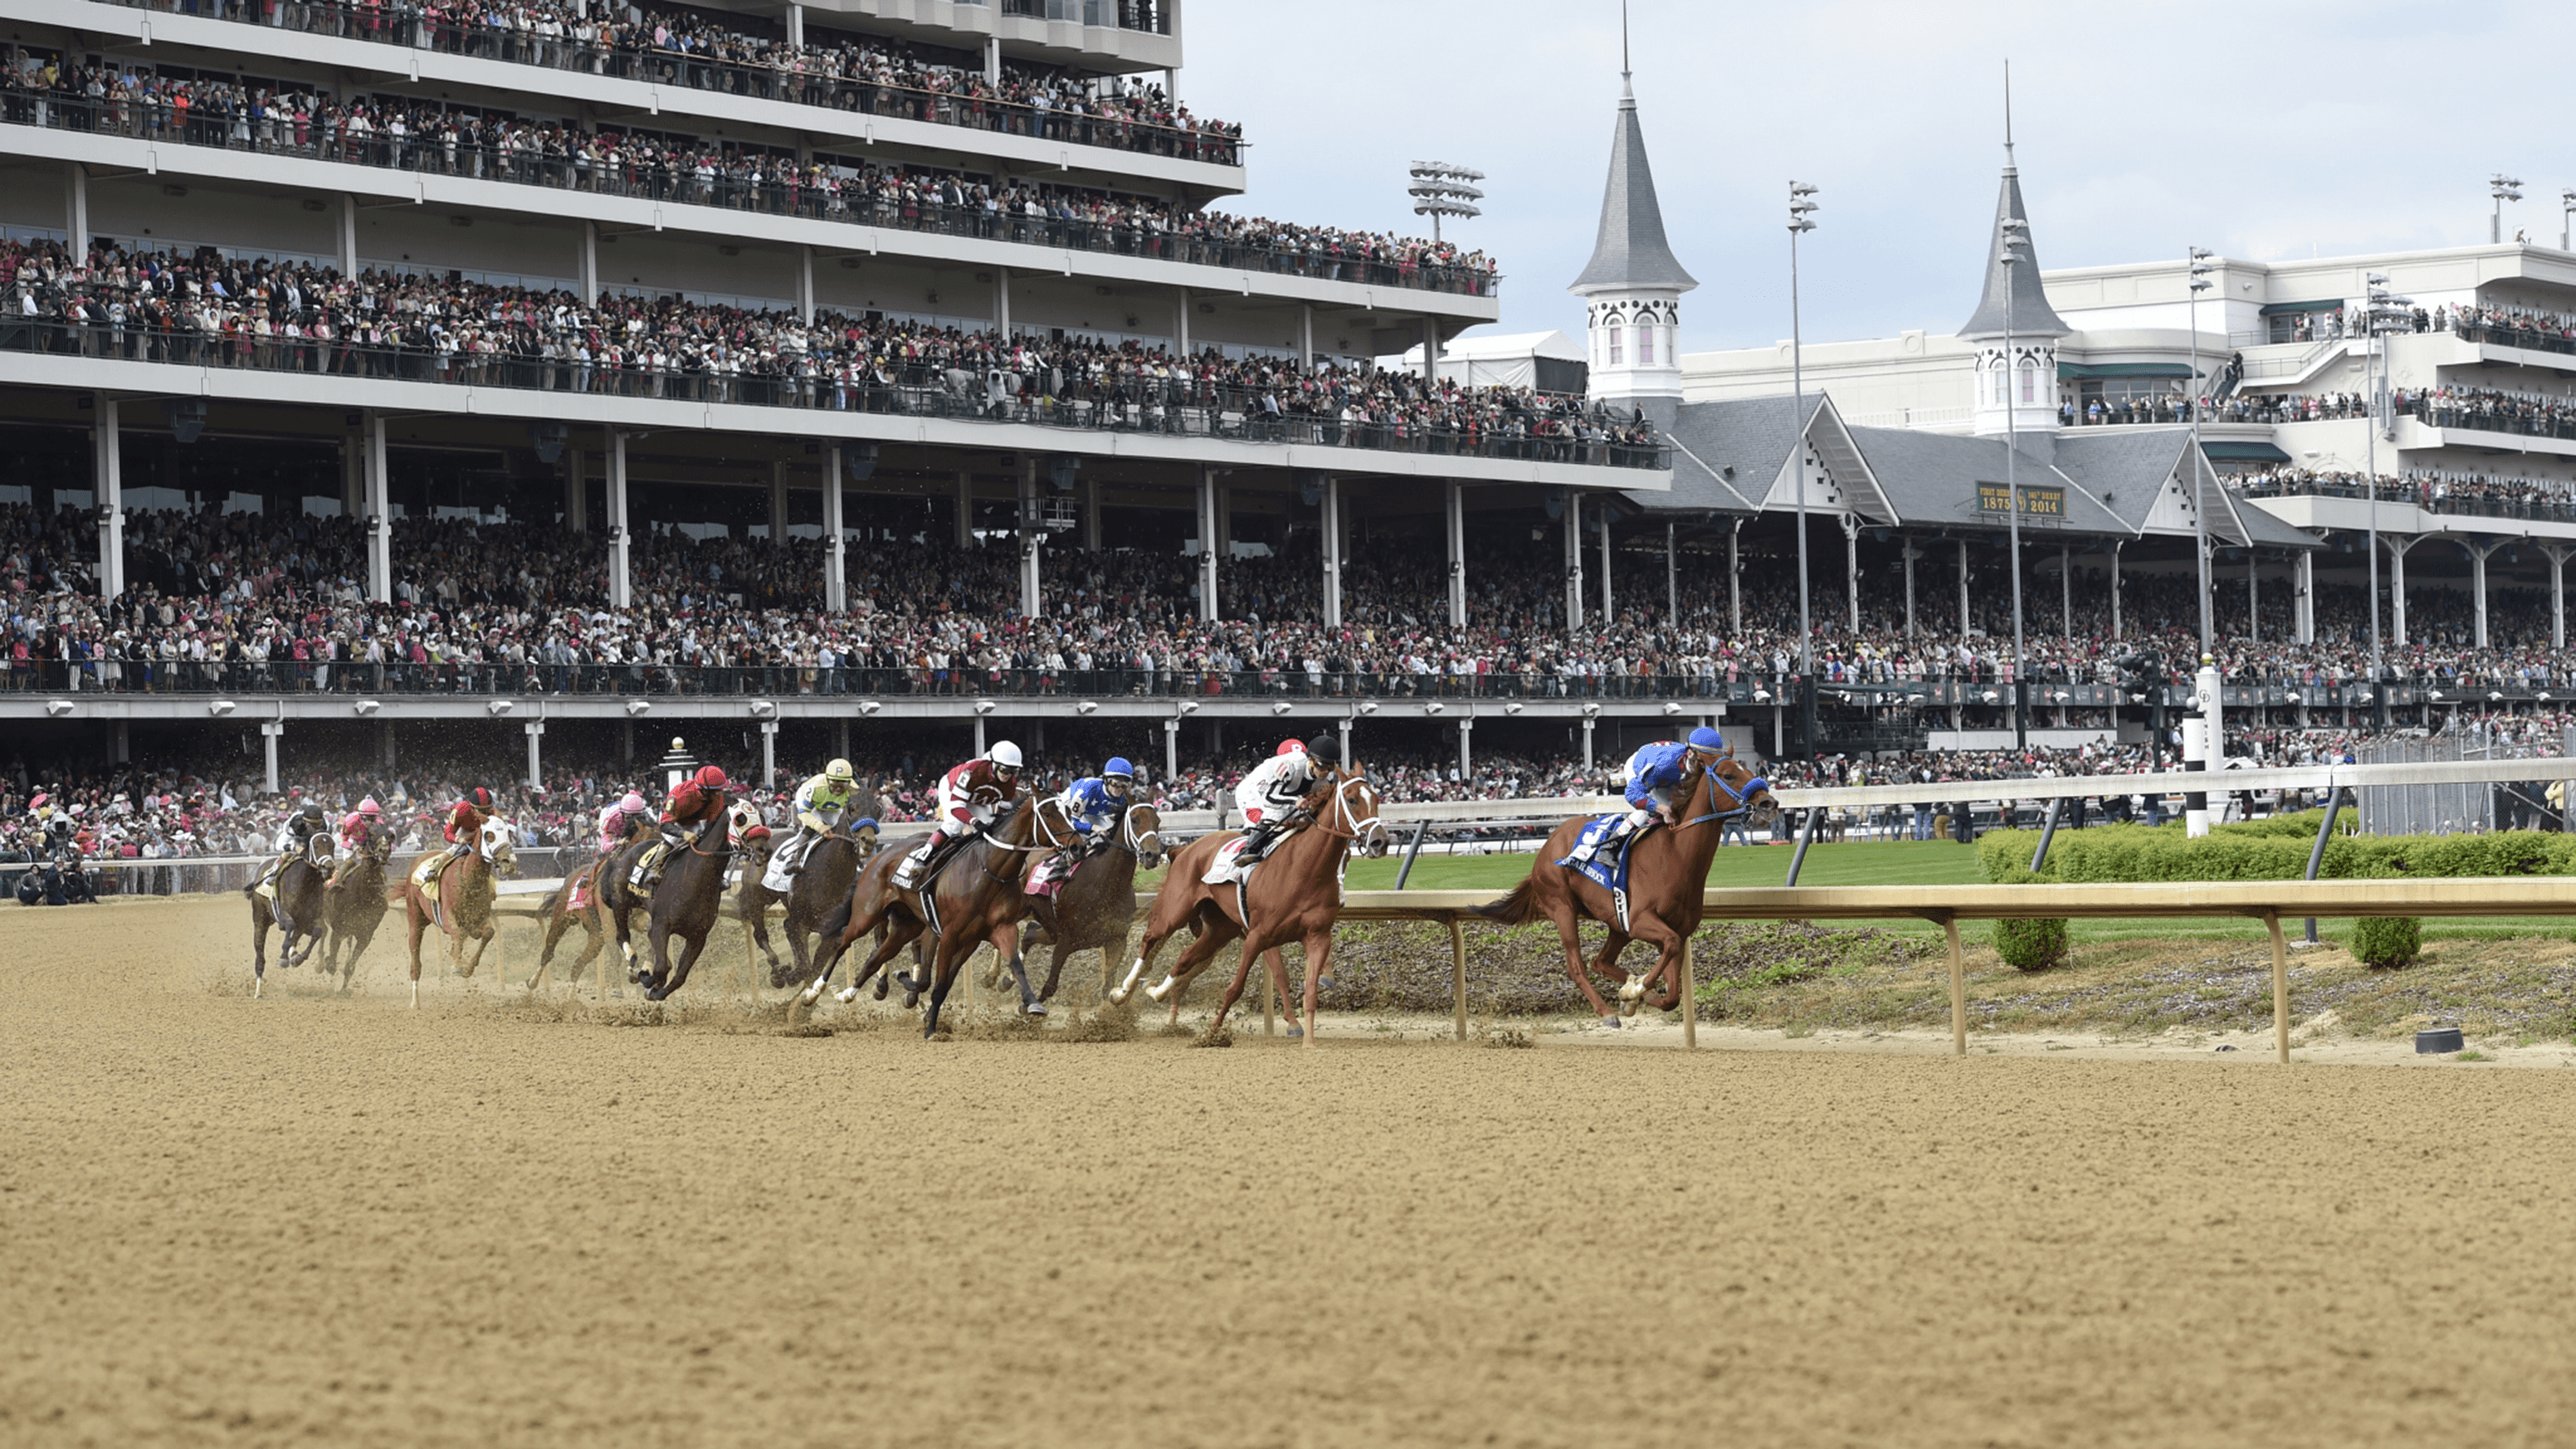 Derby horses round the first turn at Churchill Downs